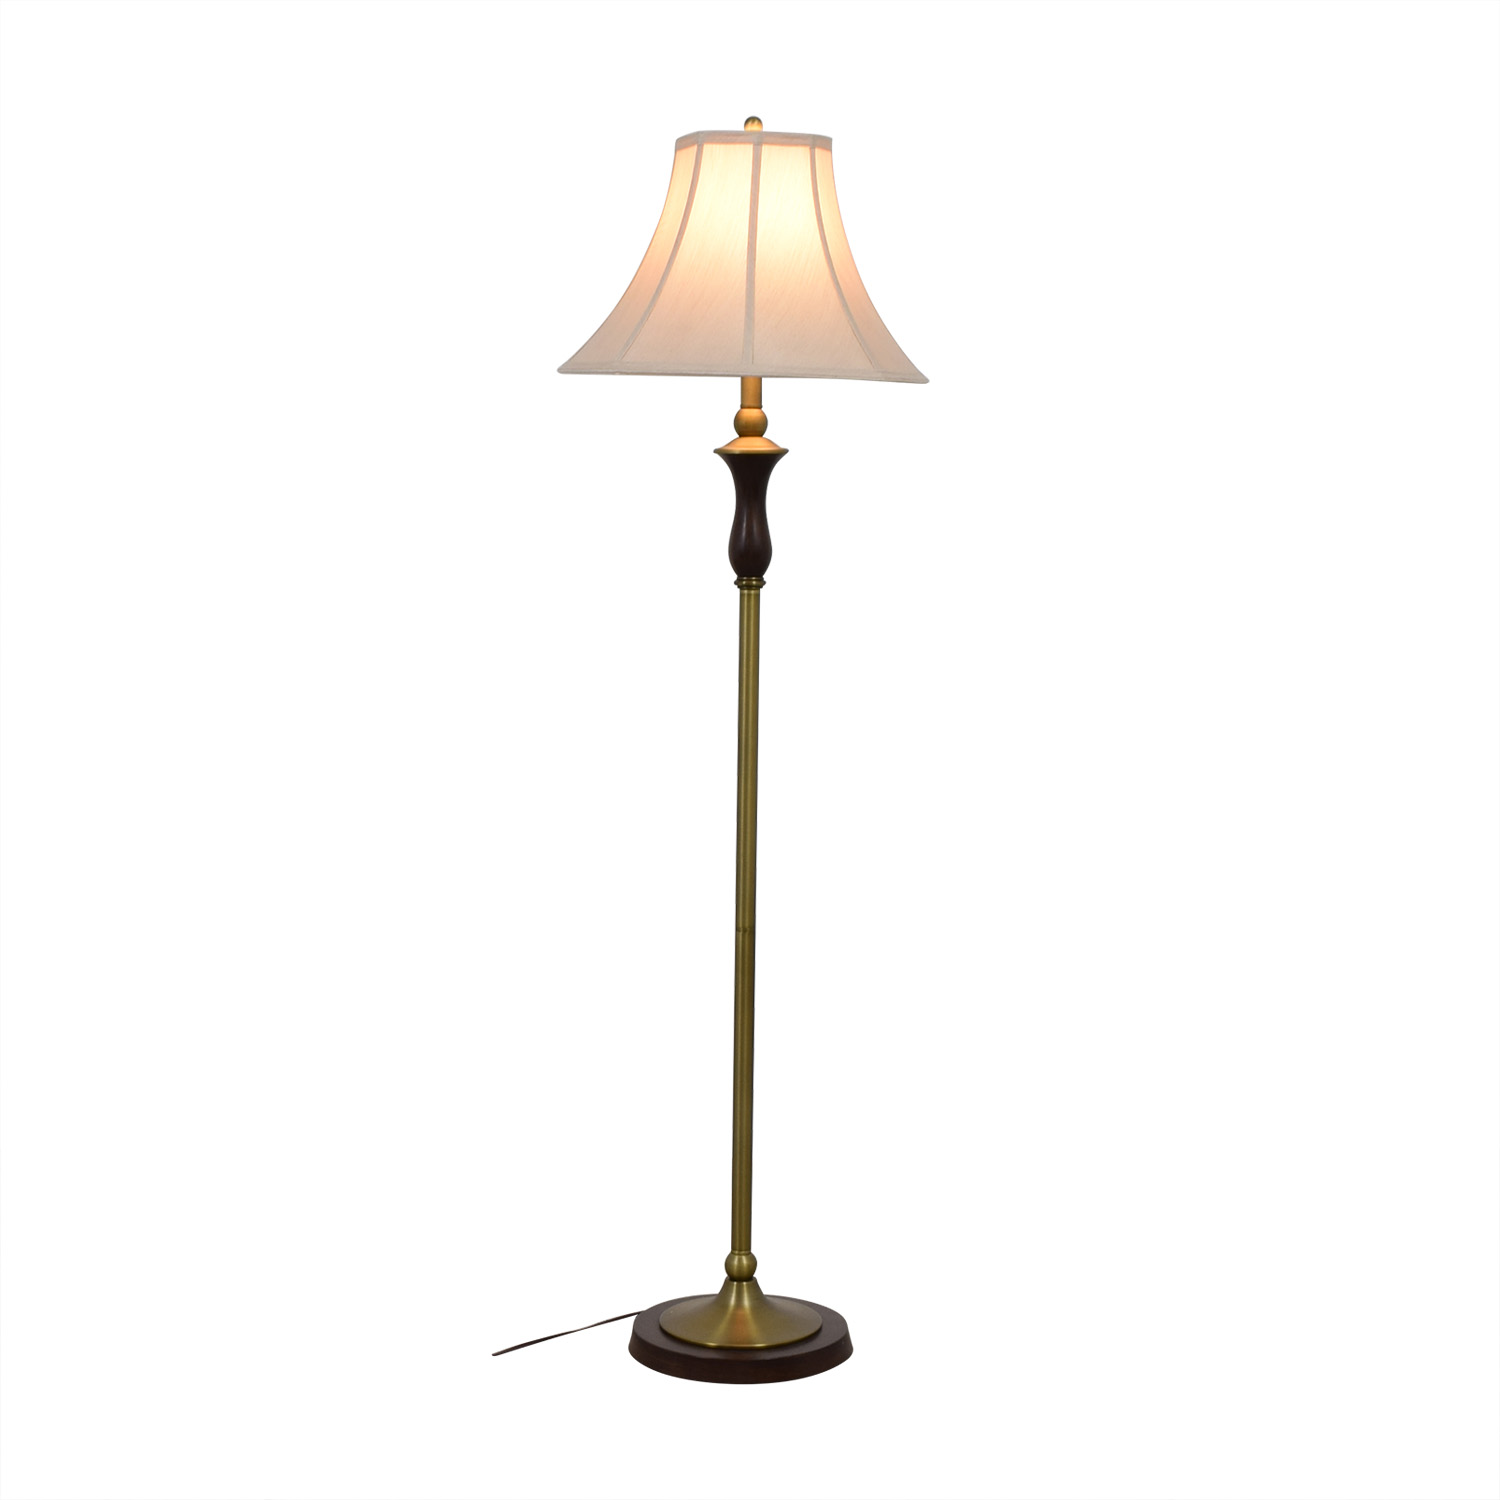 shop Crate & Barrel Wood and Brass Floor Lamp Crate & Barrel Lamps